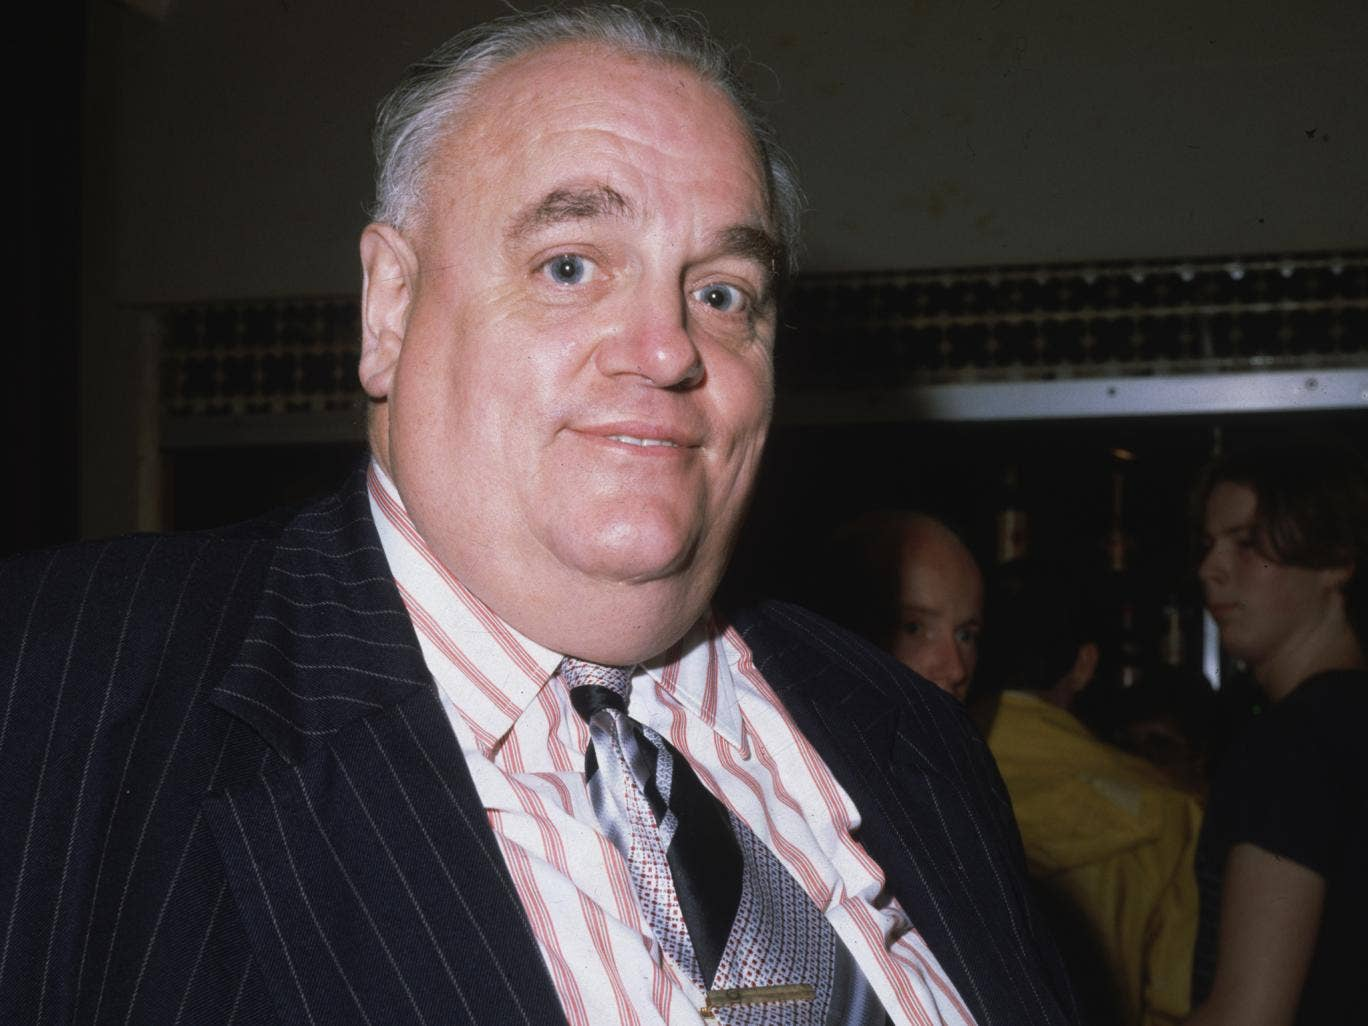 Sir Cyril Smith was MP for Rochdale from 1972 to 1992